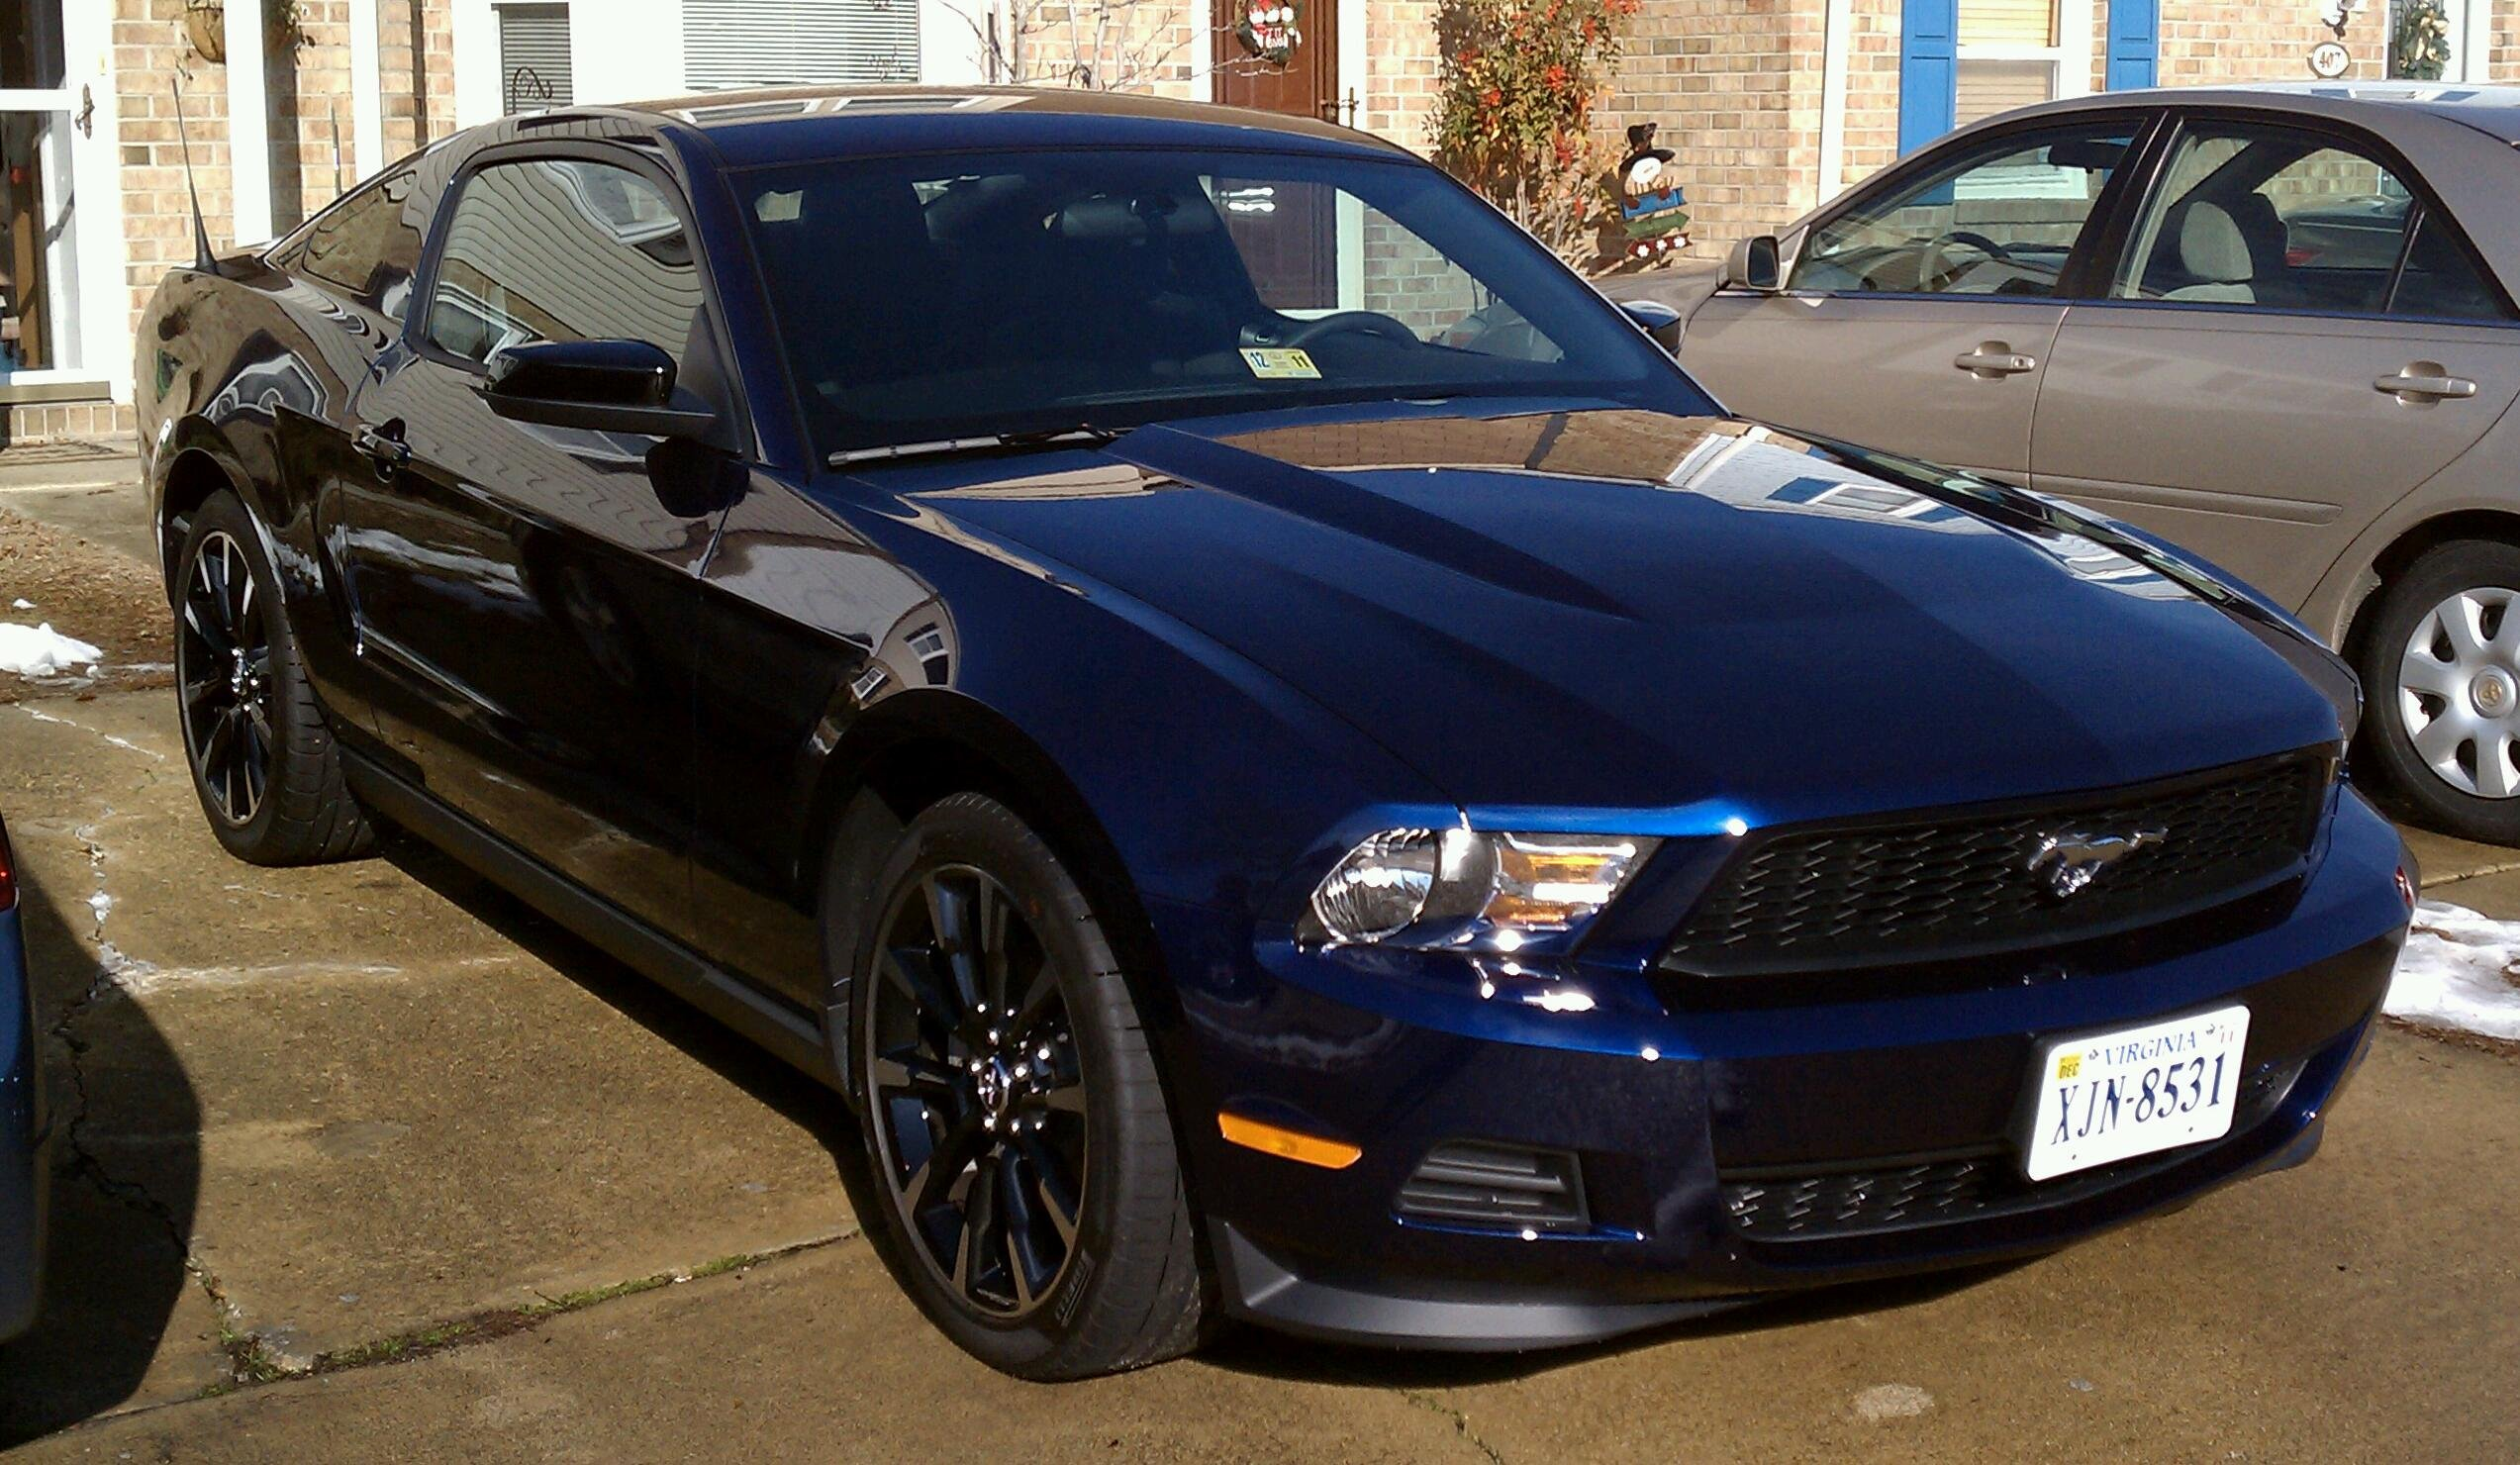 kona blue pony package or mca pics please ford mustang forum. Black Bedroom Furniture Sets. Home Design Ideas